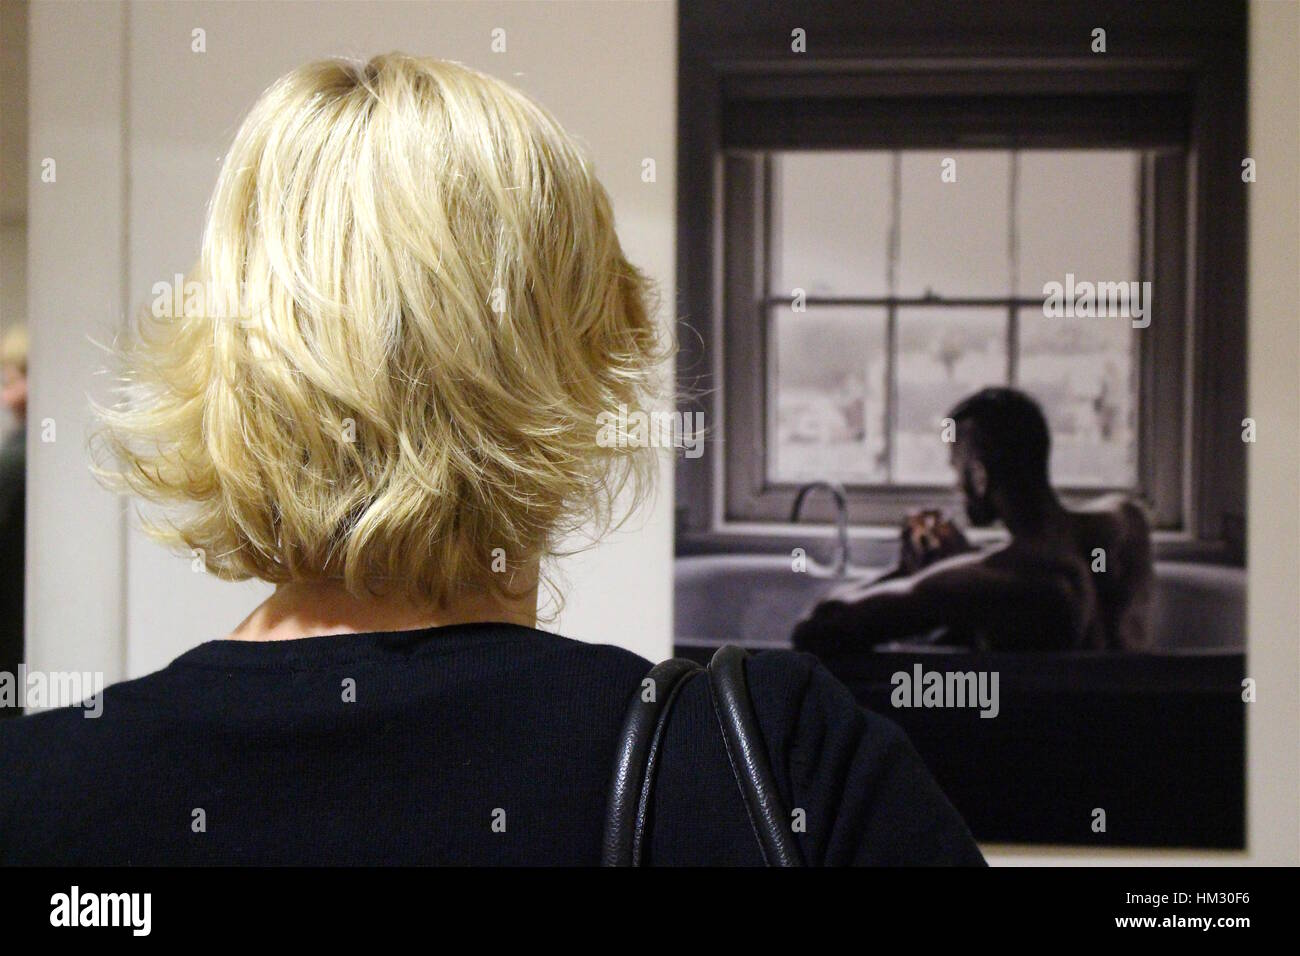 Short haired blond woman looking at the winning picture at London Photo Festival in Borough, London. May 2016 - Stock Image